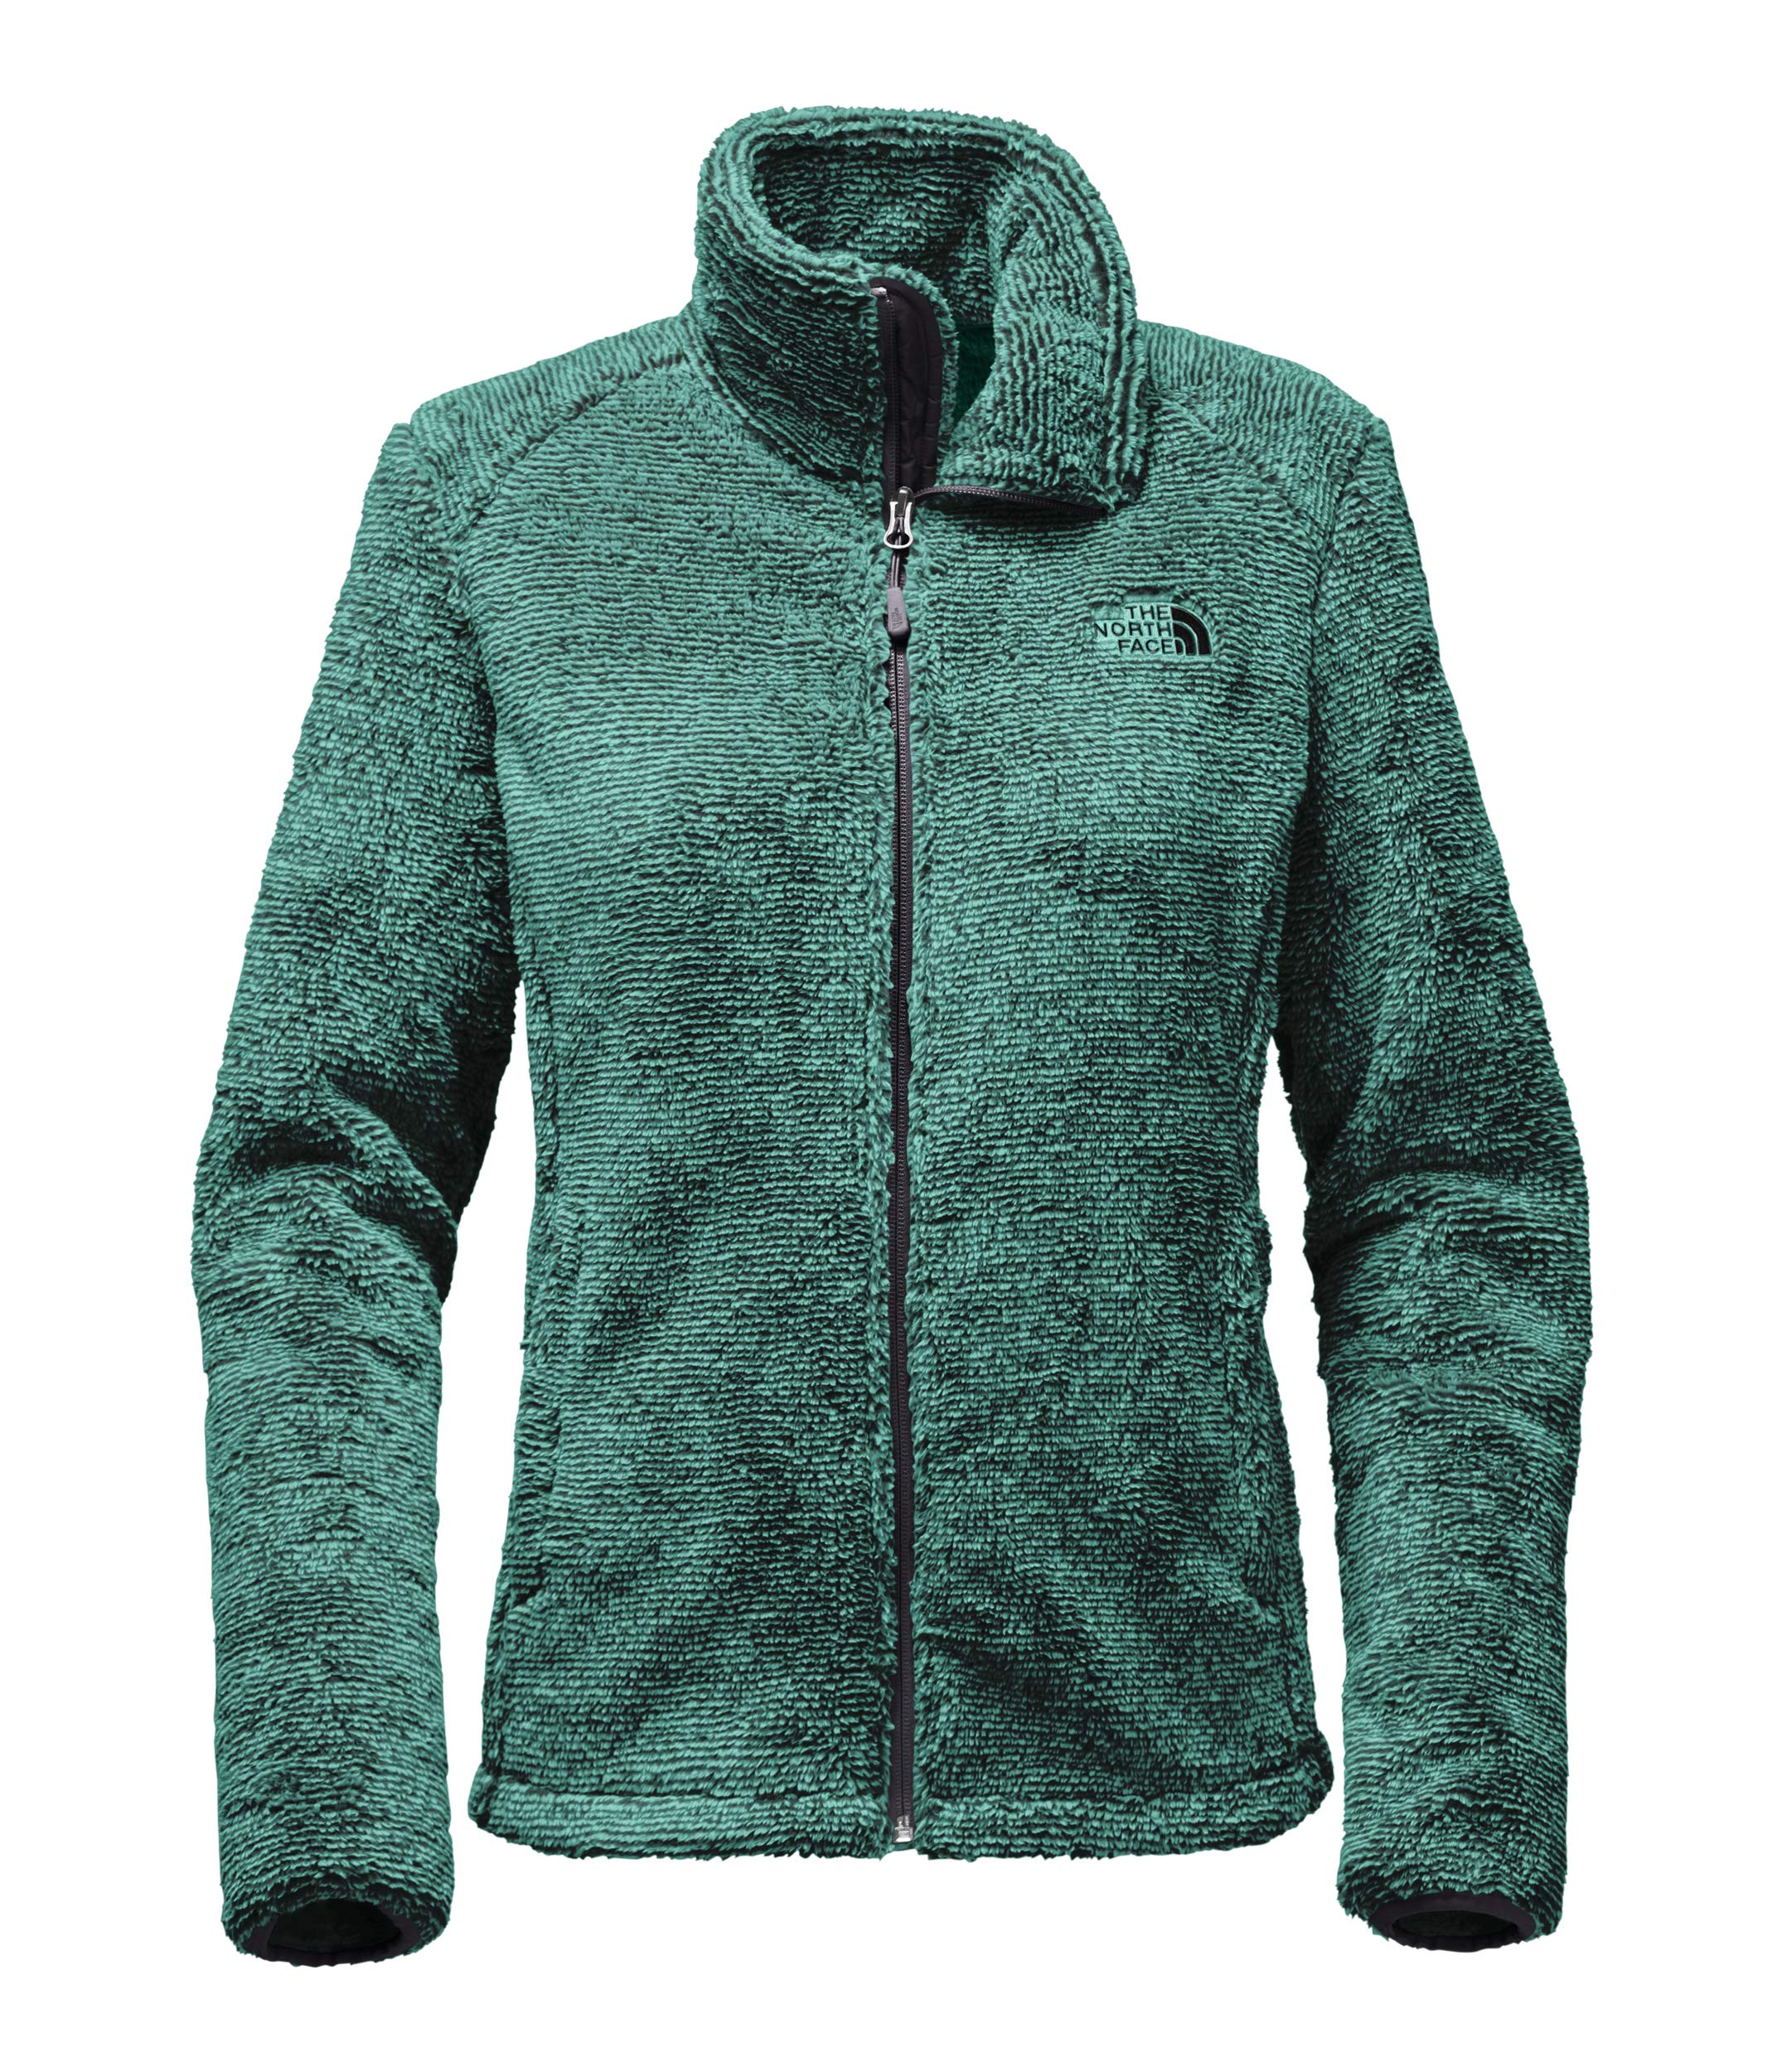 6e4b838a6 The North Face Women's Osito 2 Jacket - TNF Black & Harbor Blue Stripe - XS  (Past Season)